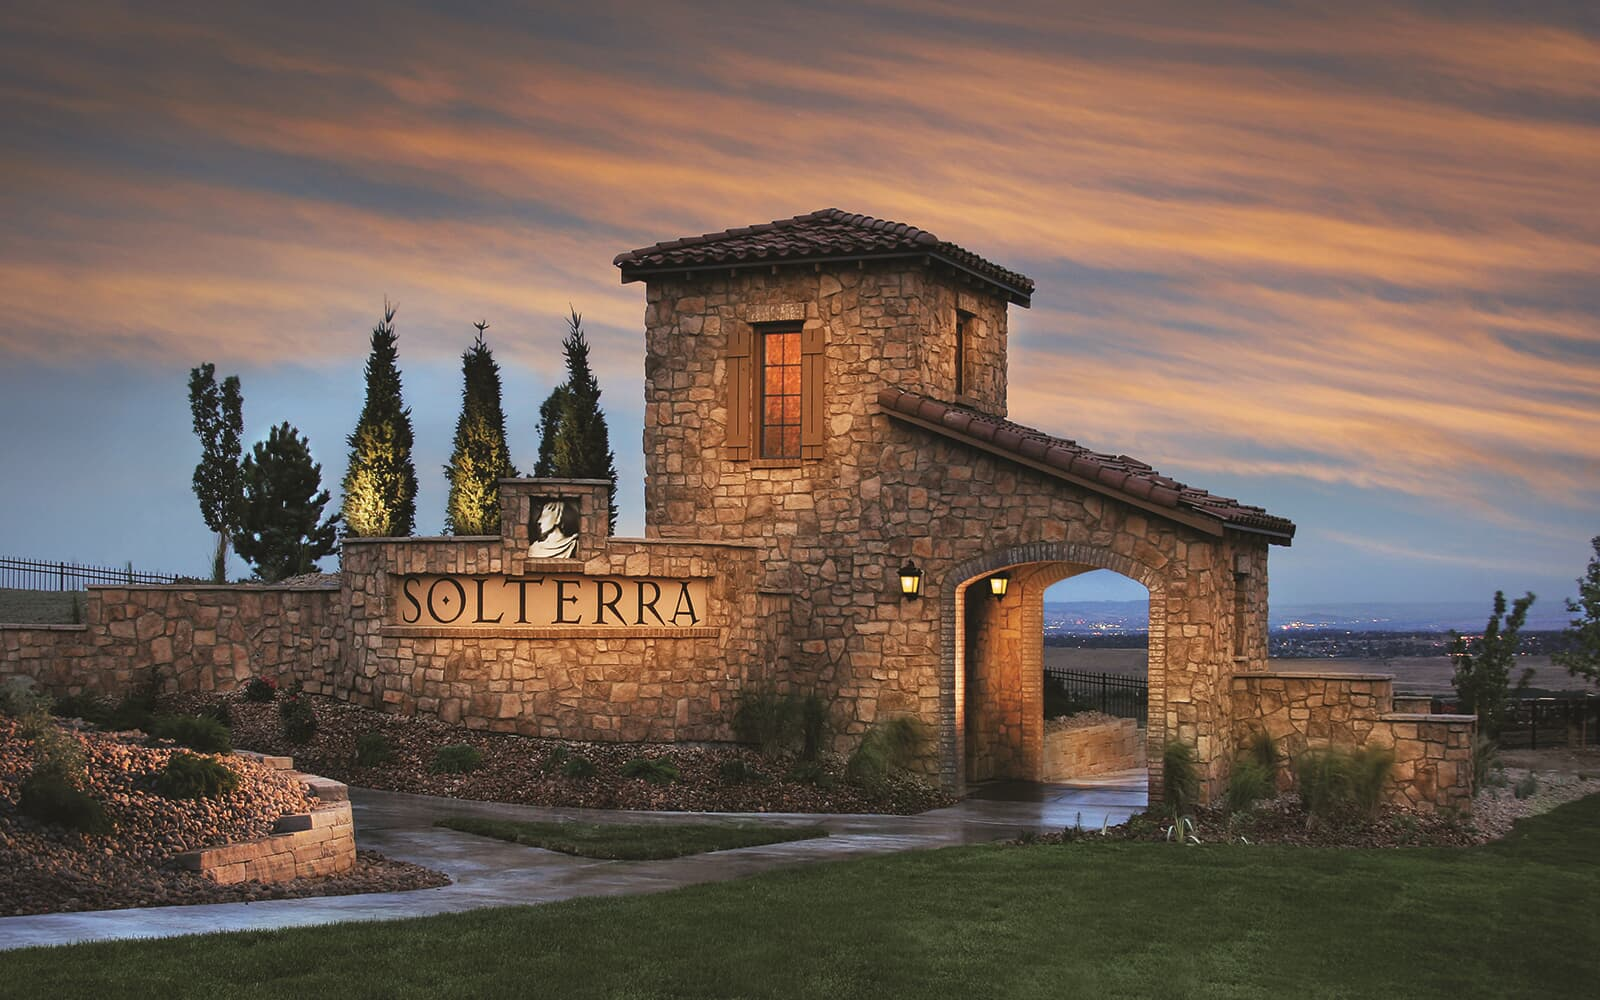 Lifestyle-Photo-Community-Retreat-Entry-Signage-Solterra-Denver-Colorado